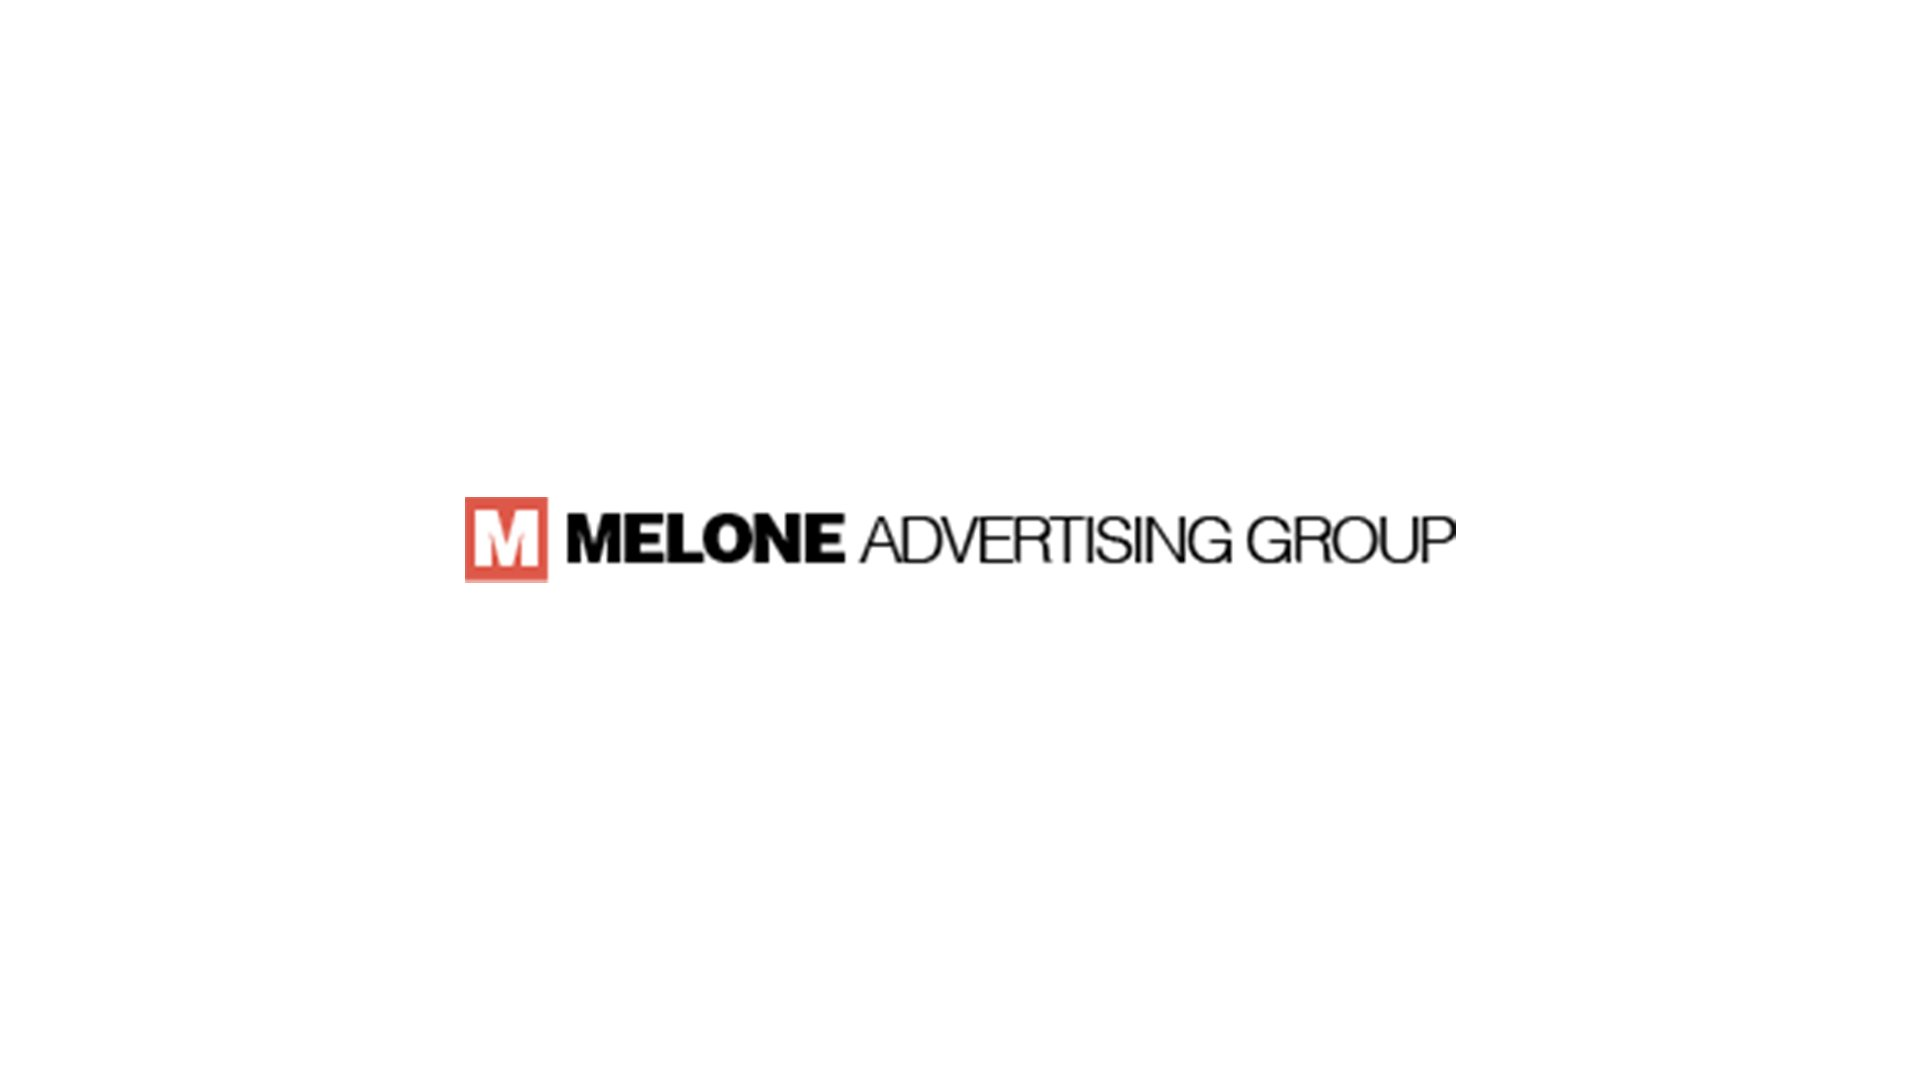 Melone Advertising